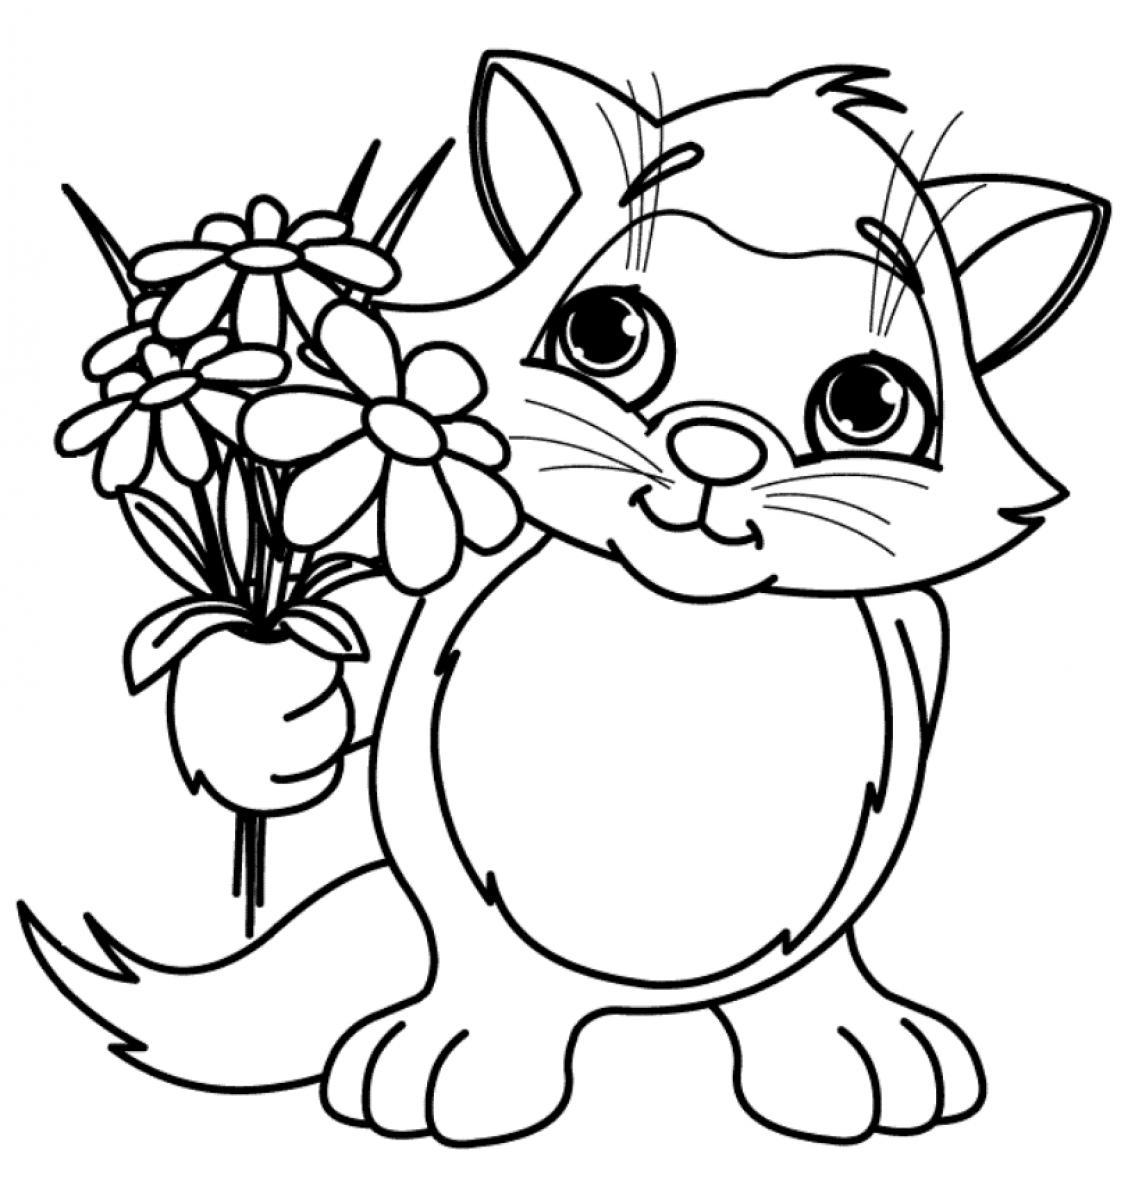 coloring pages of a flower spring flower coloring pages to download and print for free a of pages coloring flower